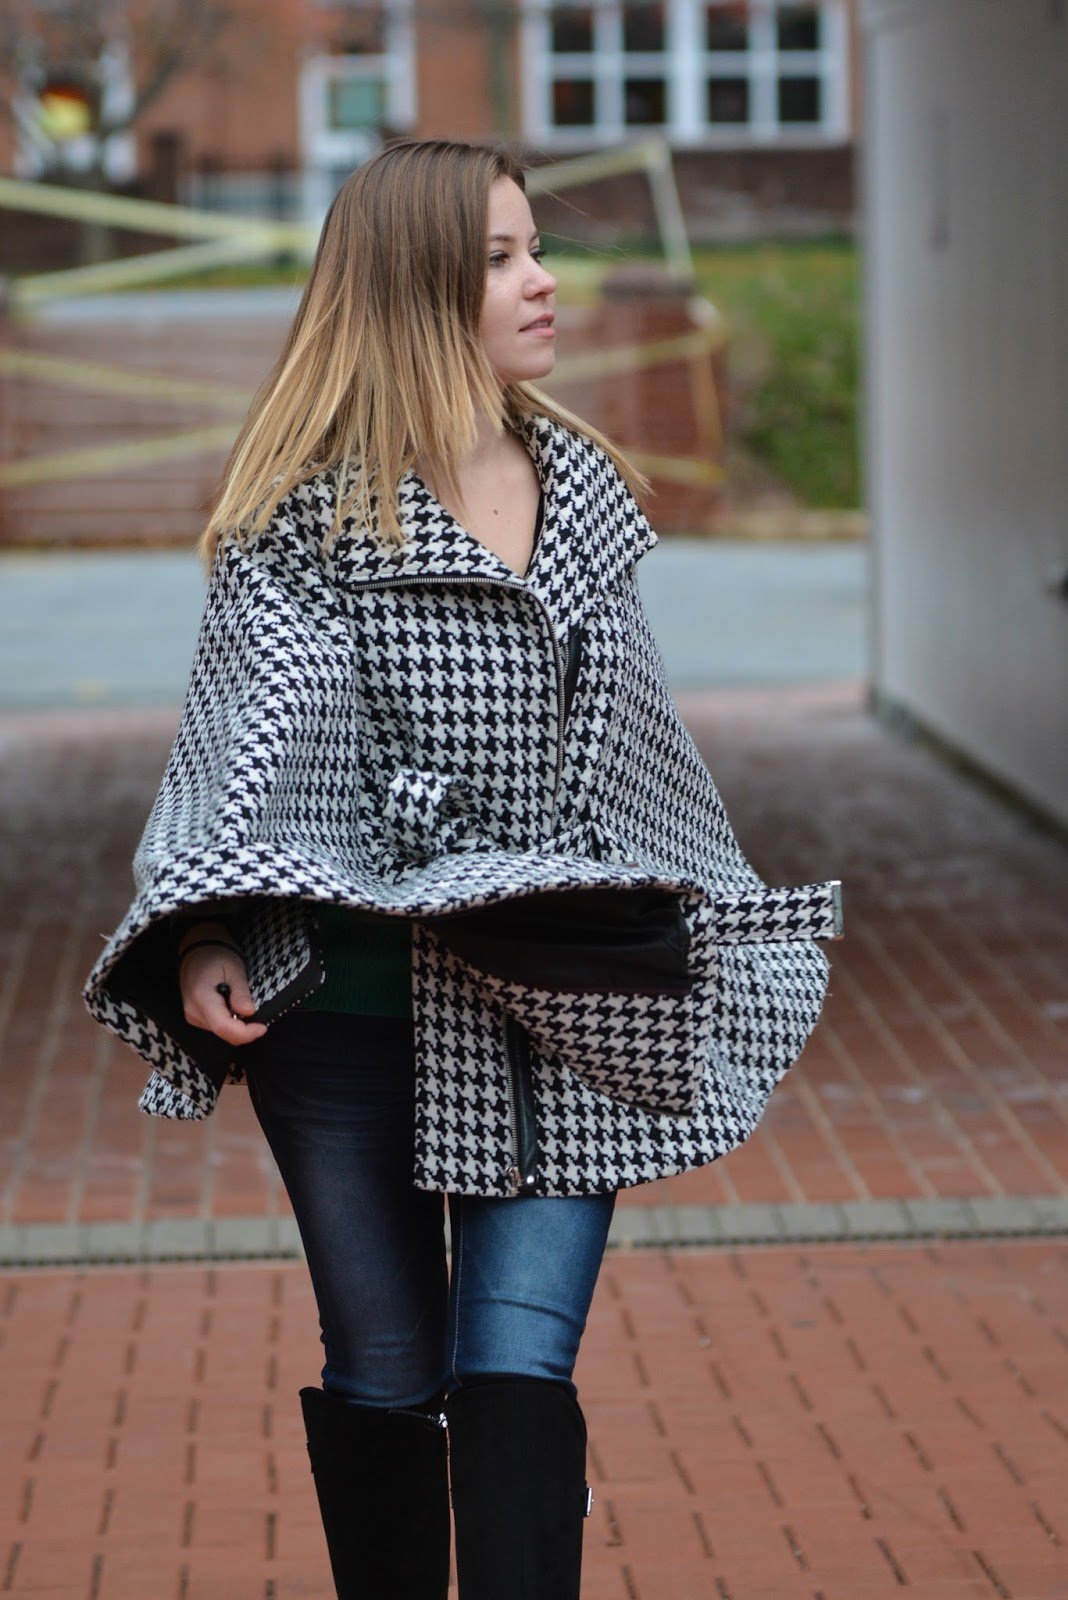 Oversized houndstooth jacket paired for fall outfit